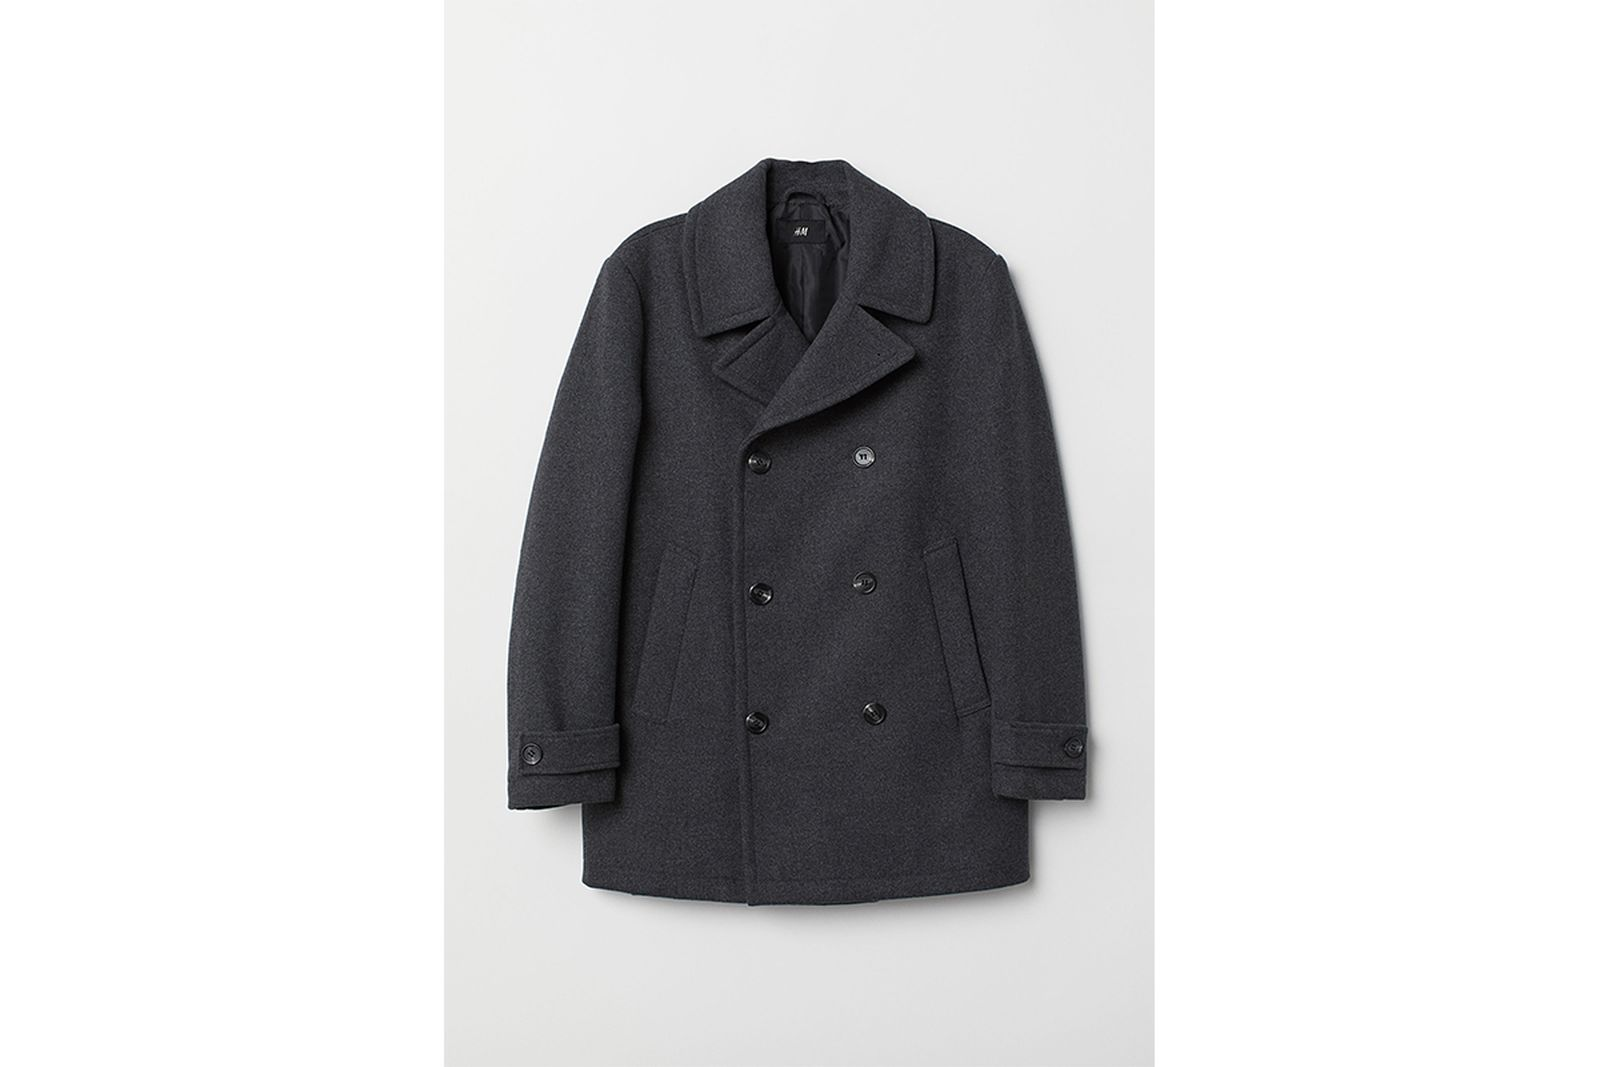 HM Pea Coat Gift Guide h&m holiday